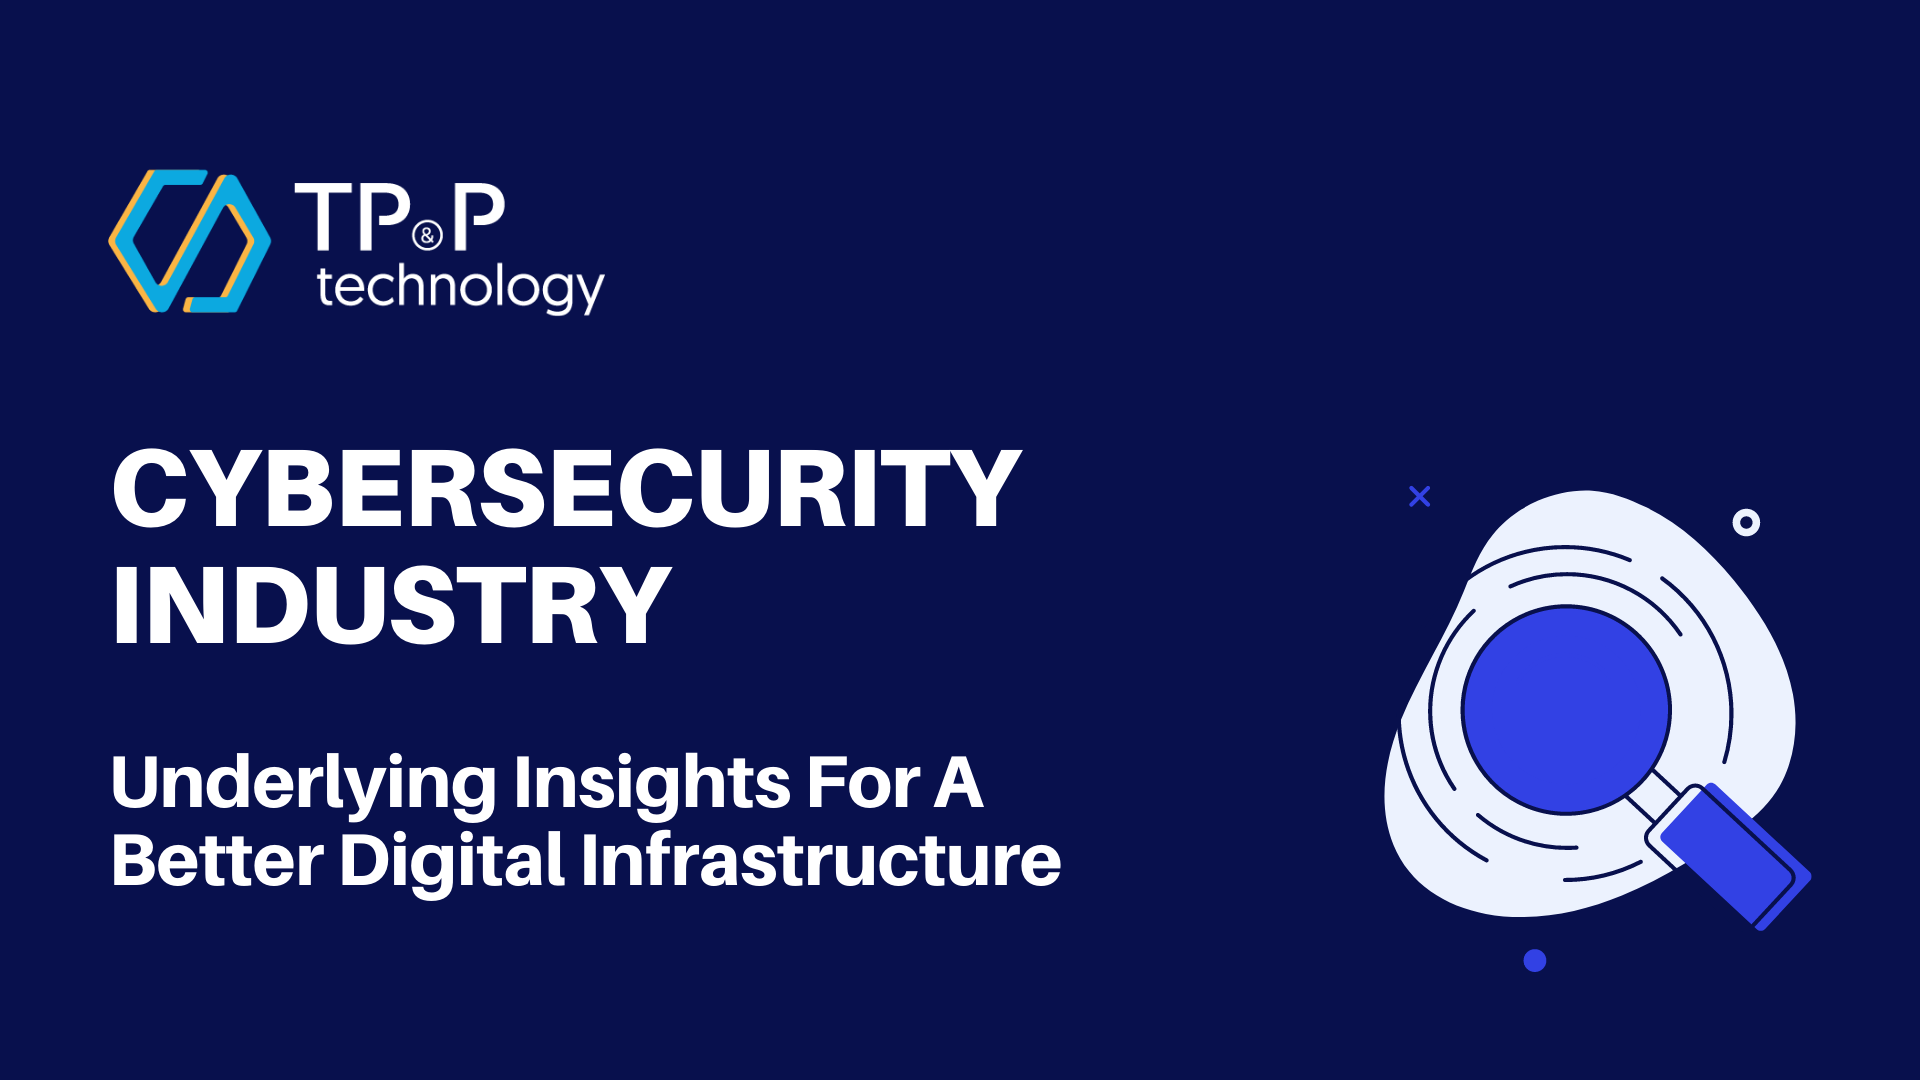 Cyber Security Services: Underlying Insights For A Better Digital Infrastructure